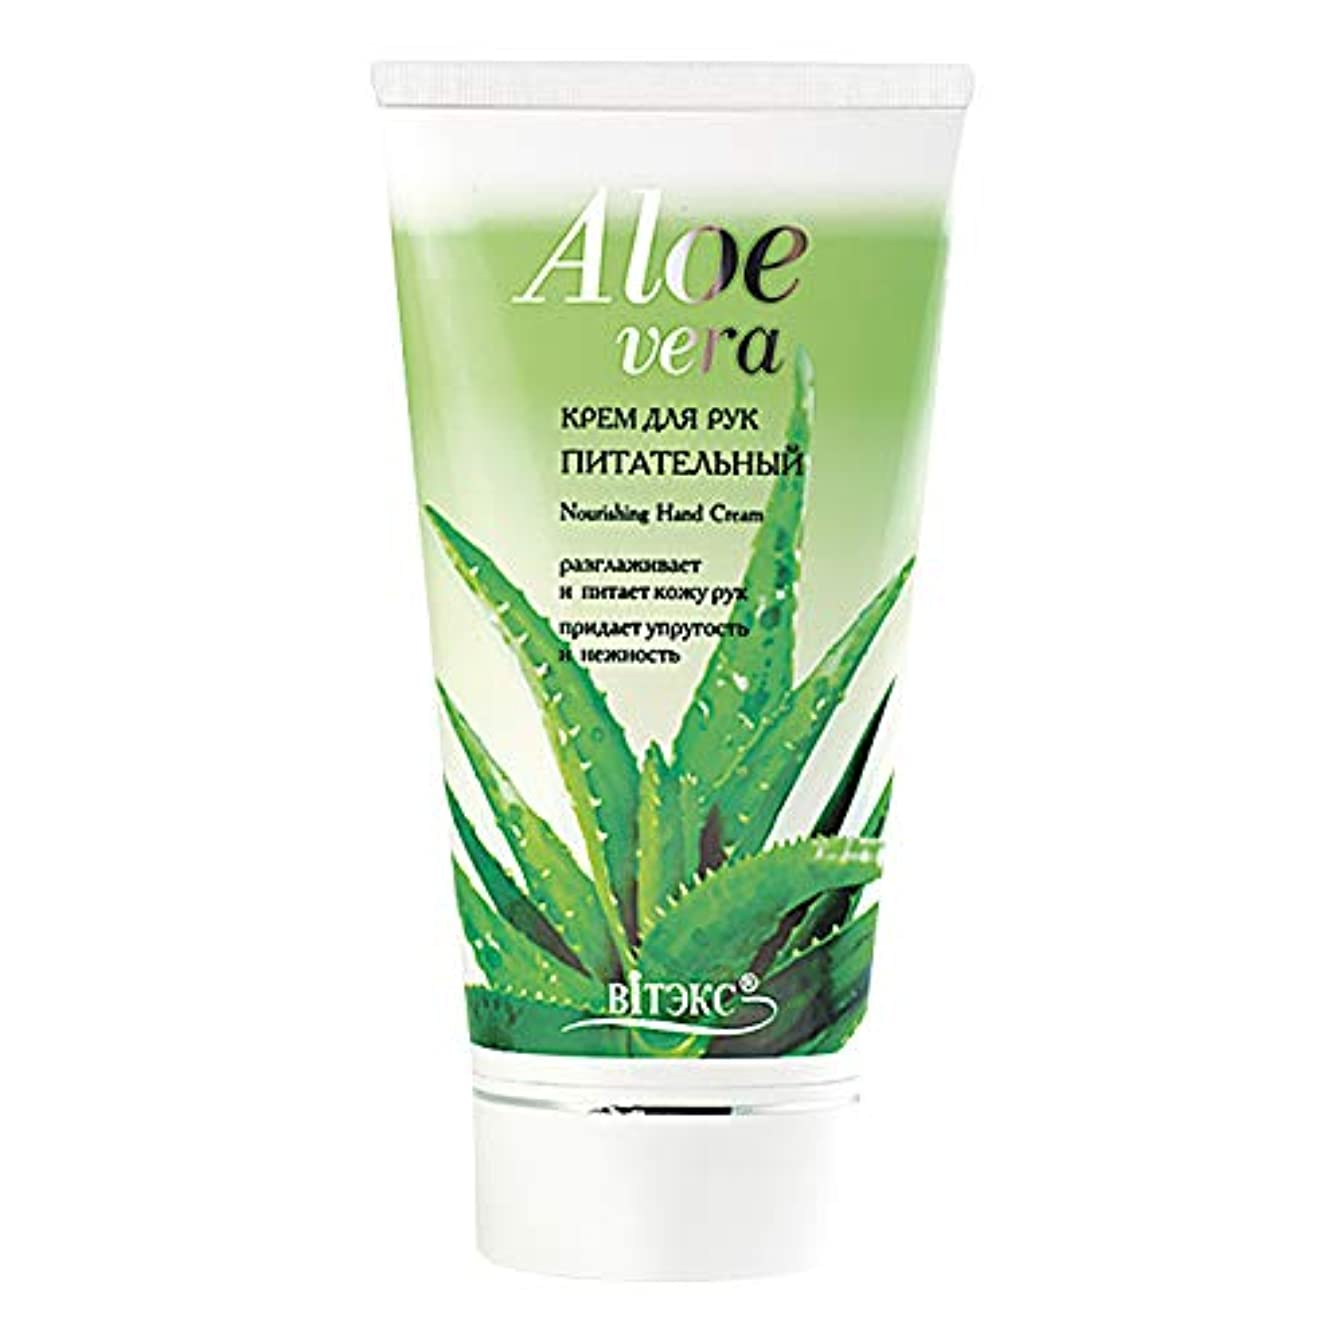 苦いうなり声クリークBielita & Vitex Aloe Vera Line | Nourishing Hand Cream, 150 ml | Grape Seed Oil, Aloe Juice, Vitamins